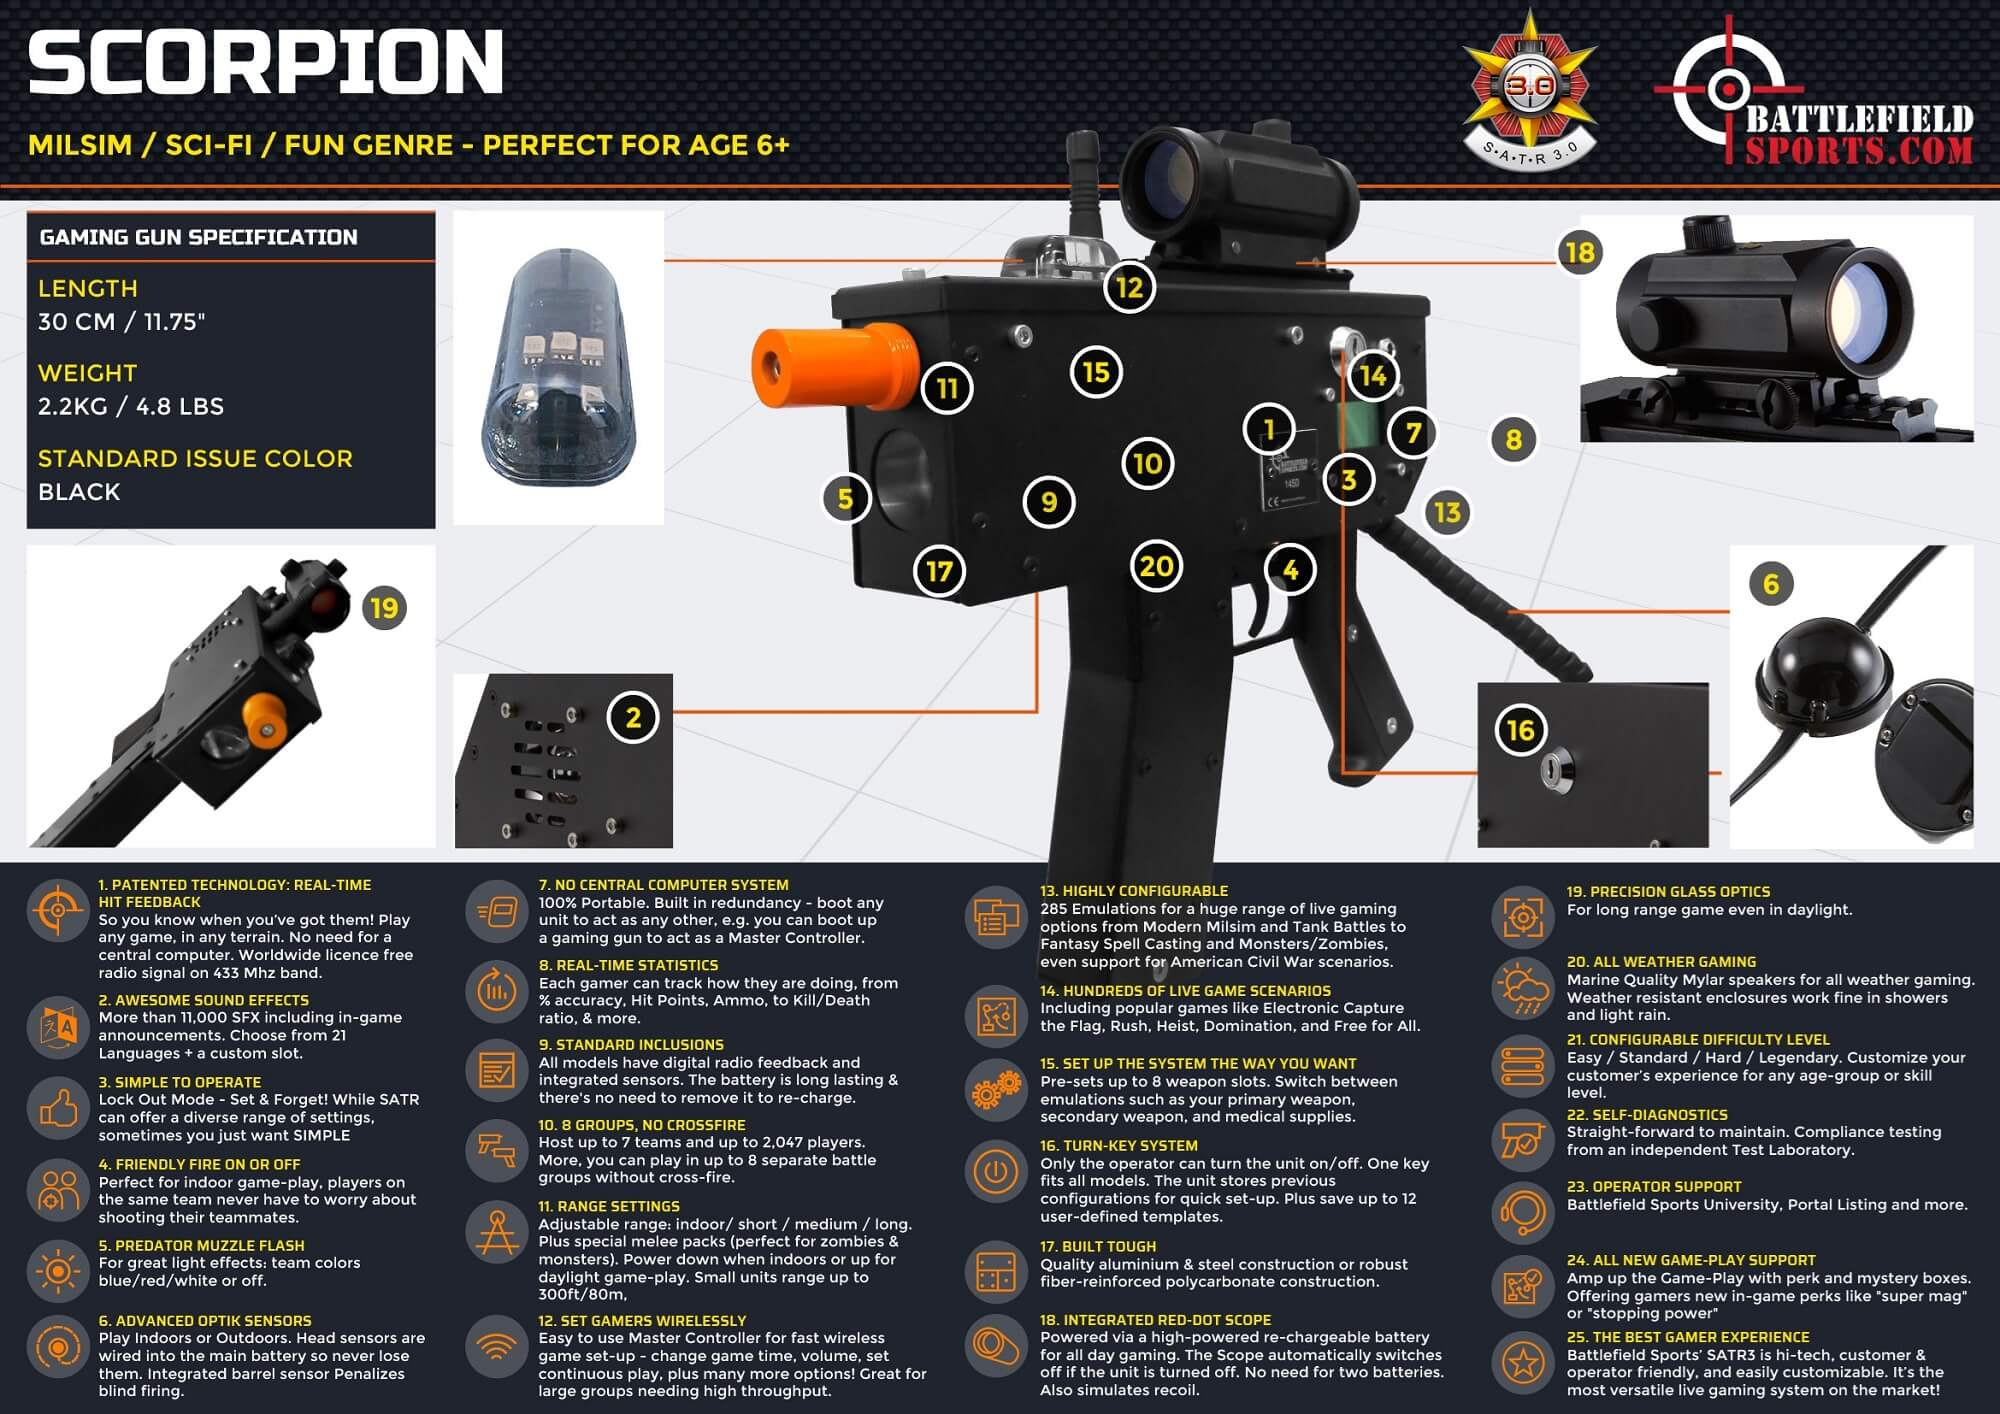 Scorpion Smg Laser Tag Gun Specifications